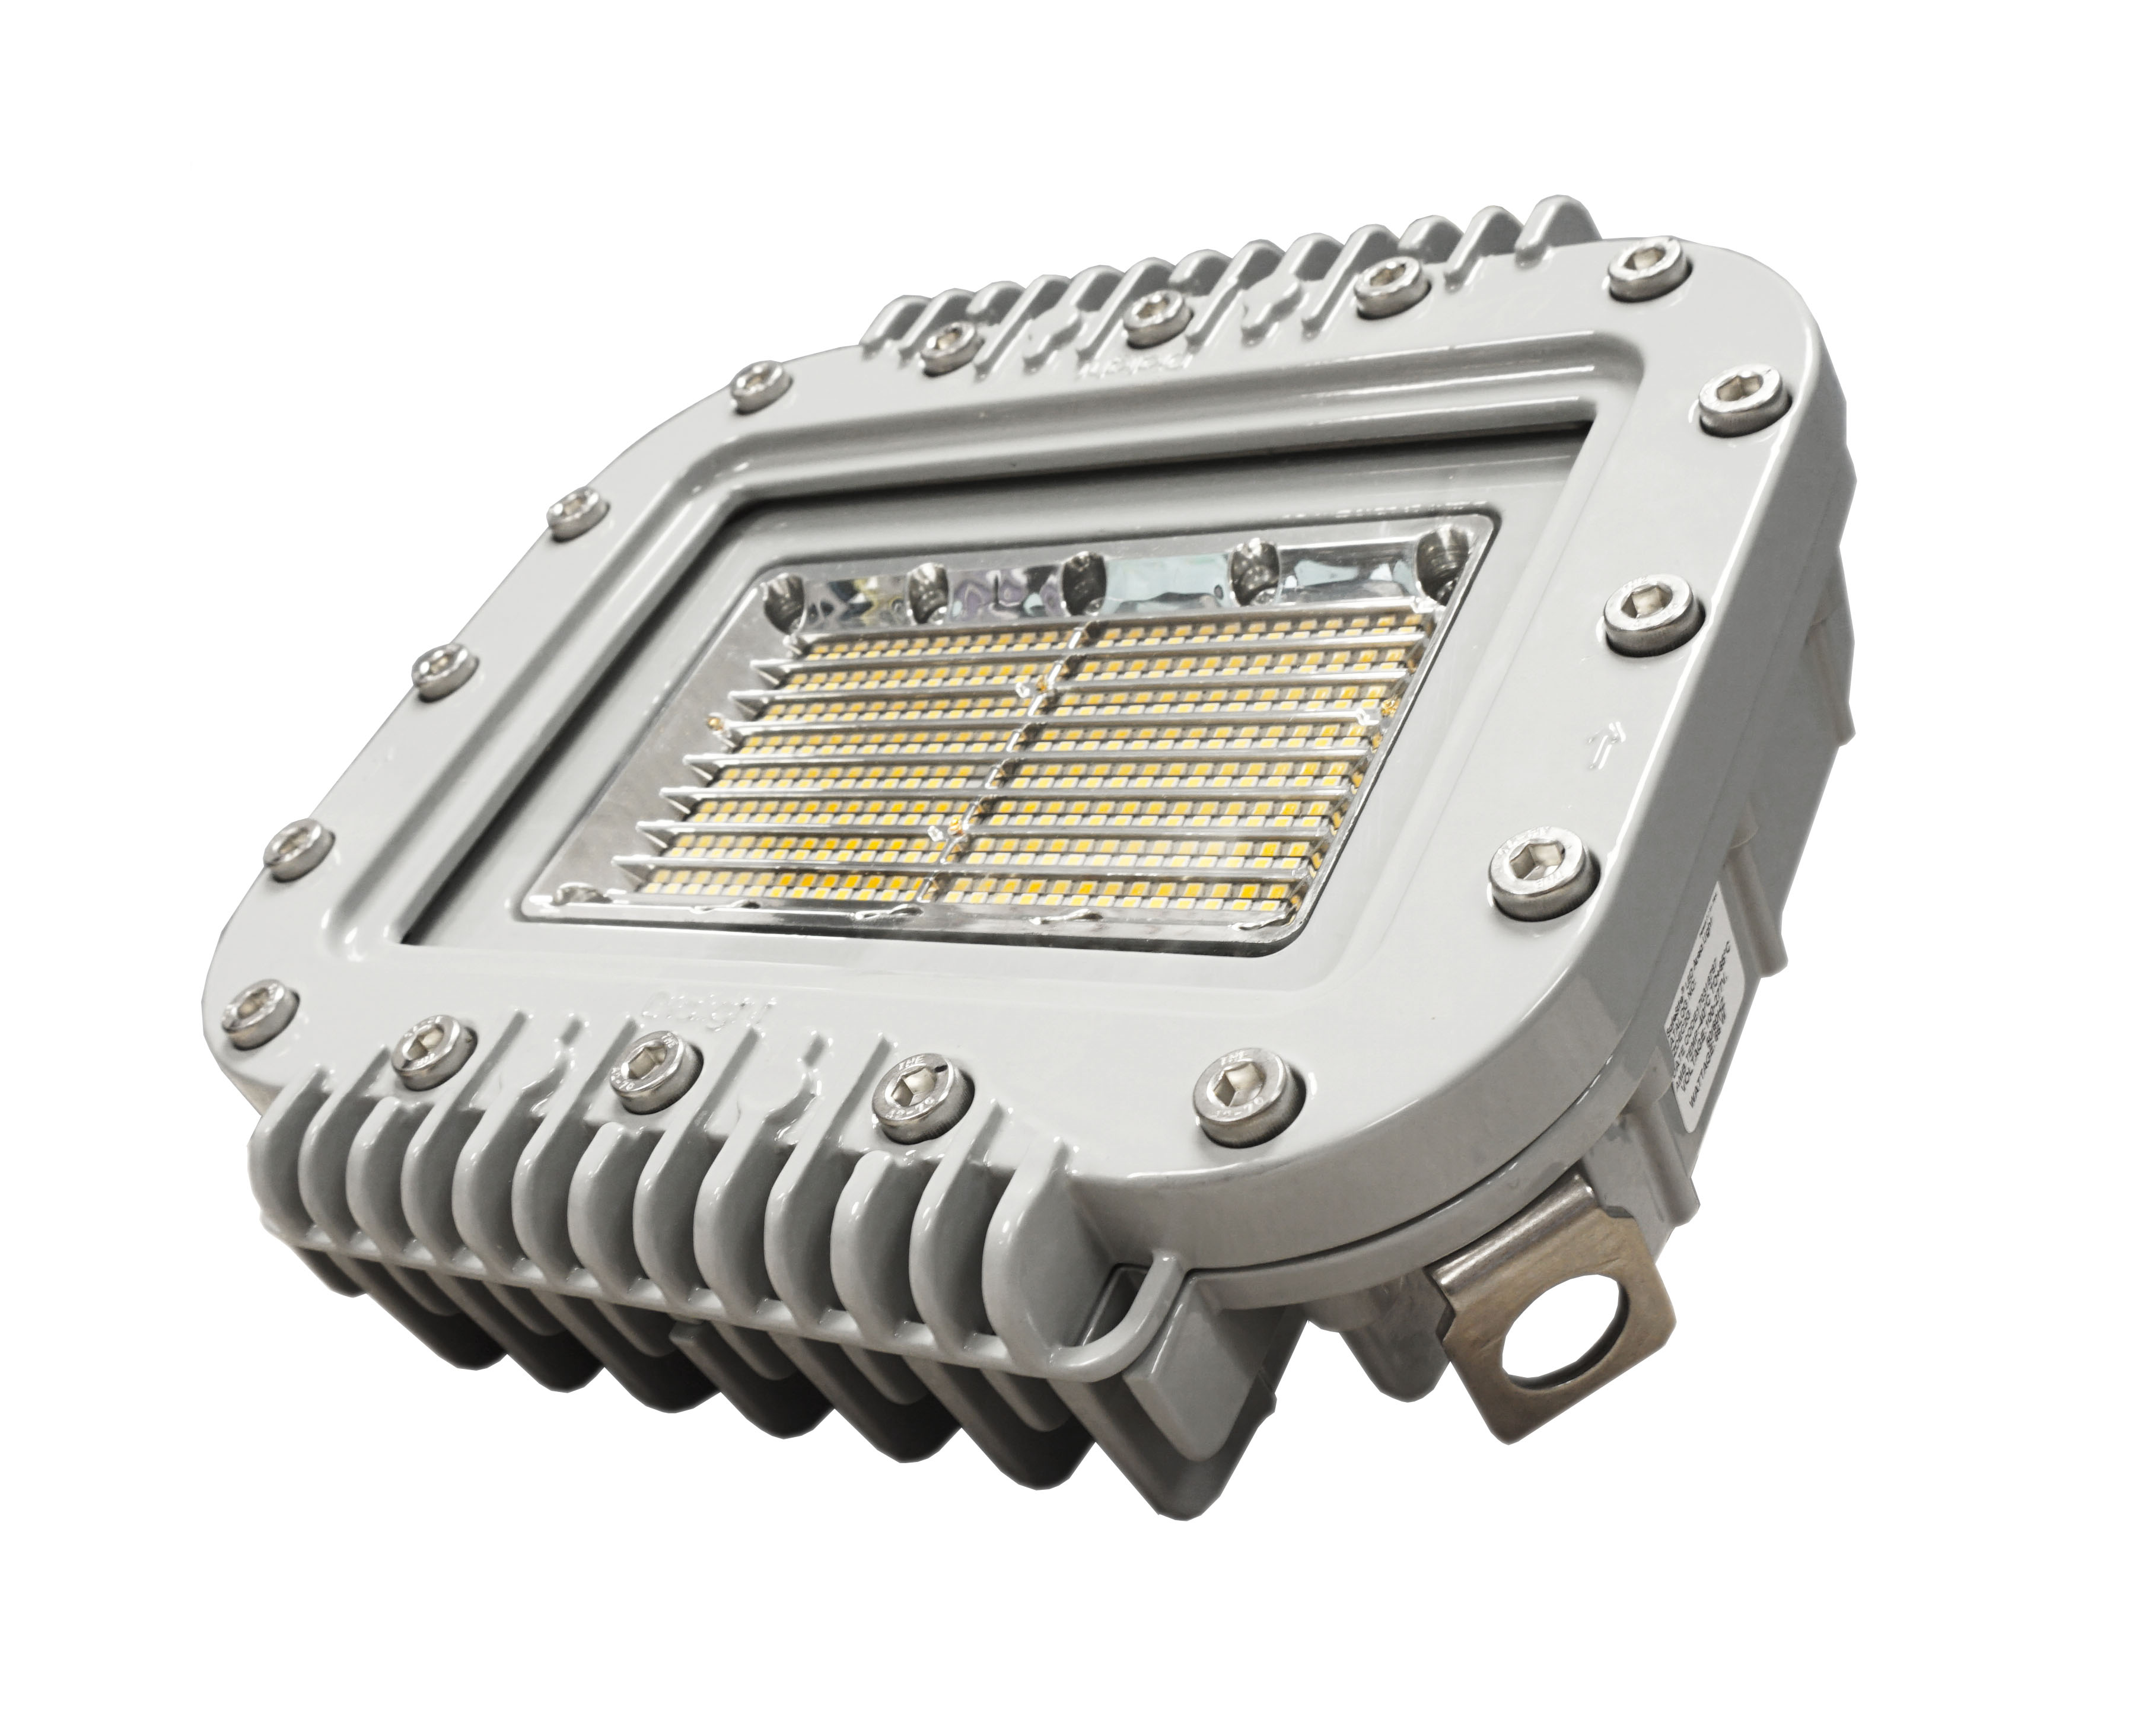 Area Light Allows for High Installation Flexibility